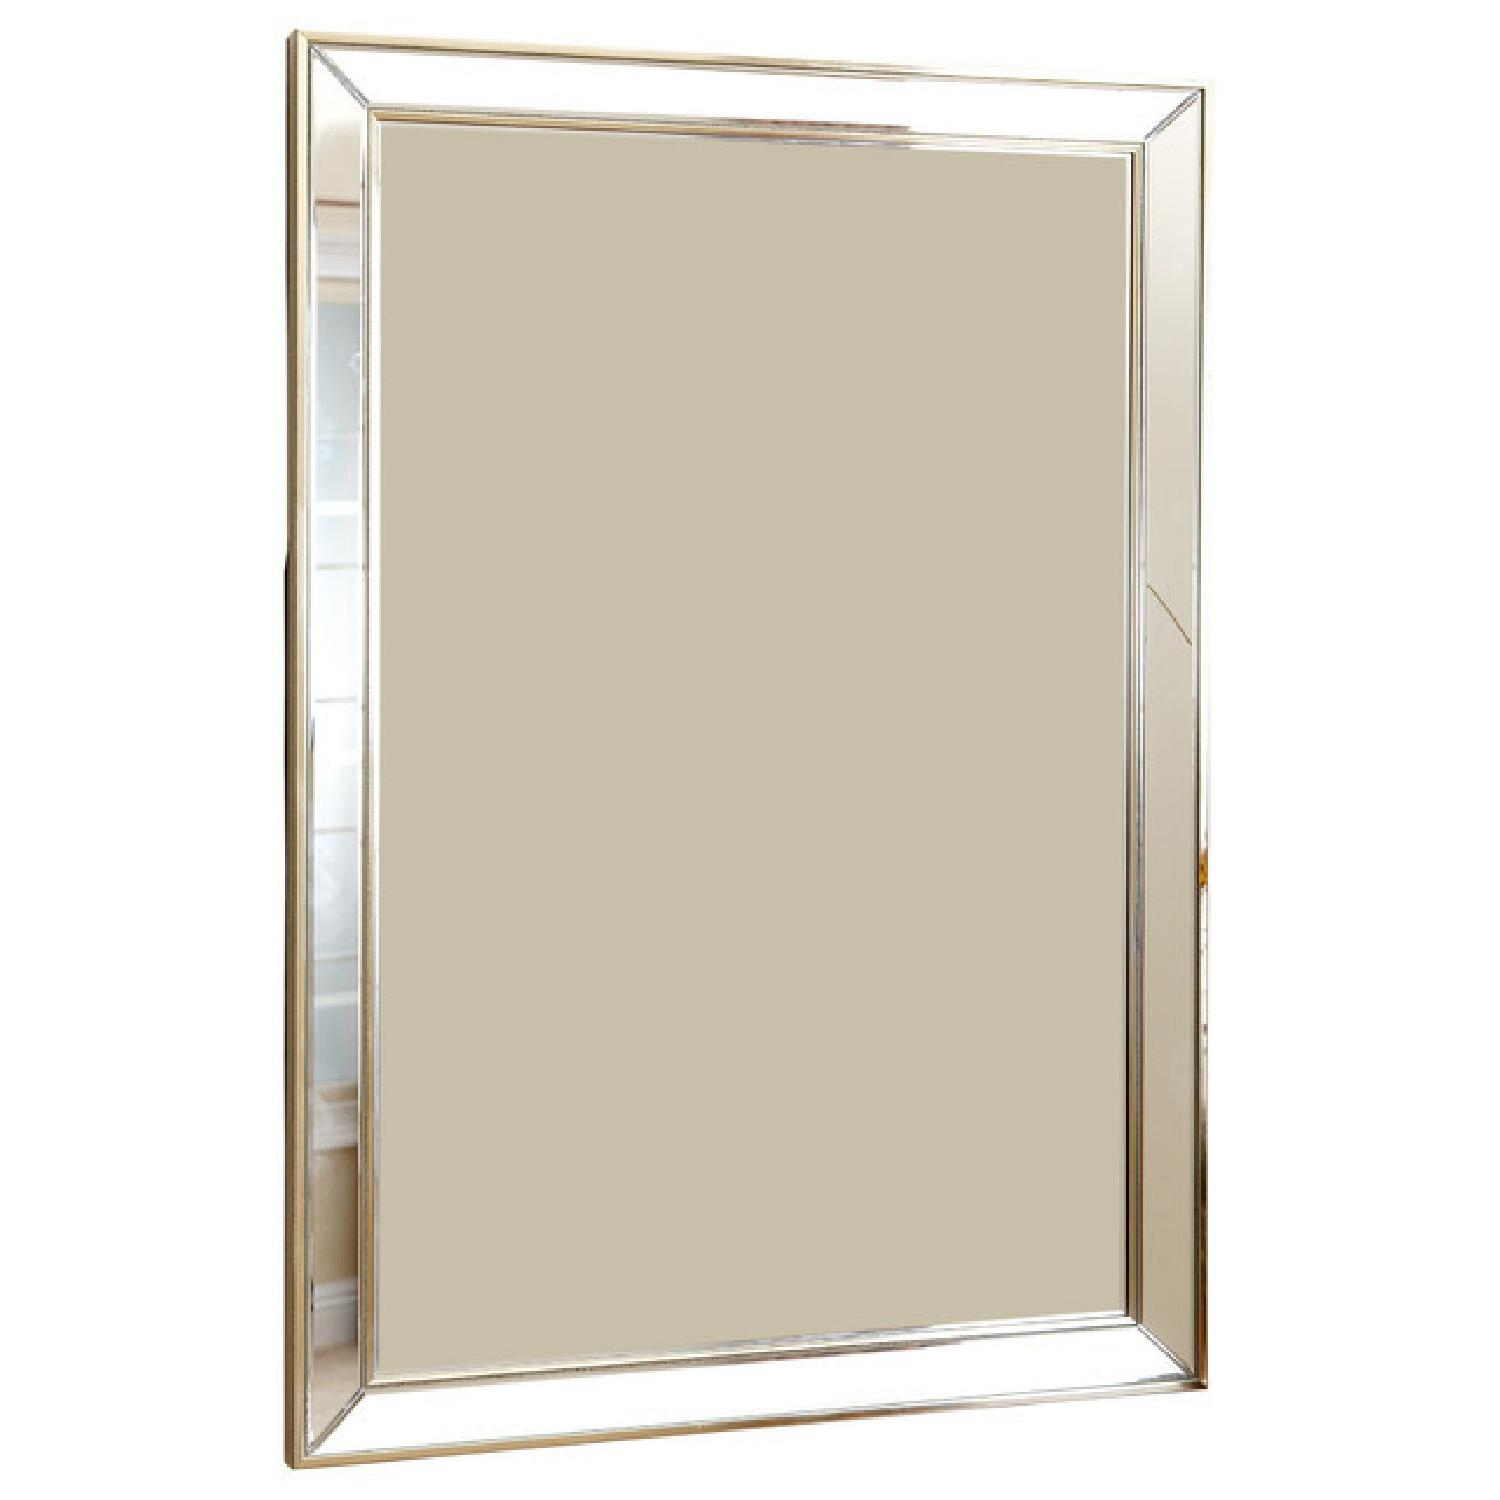 Abbyson Living Rectangular Wall Mirror - image-4